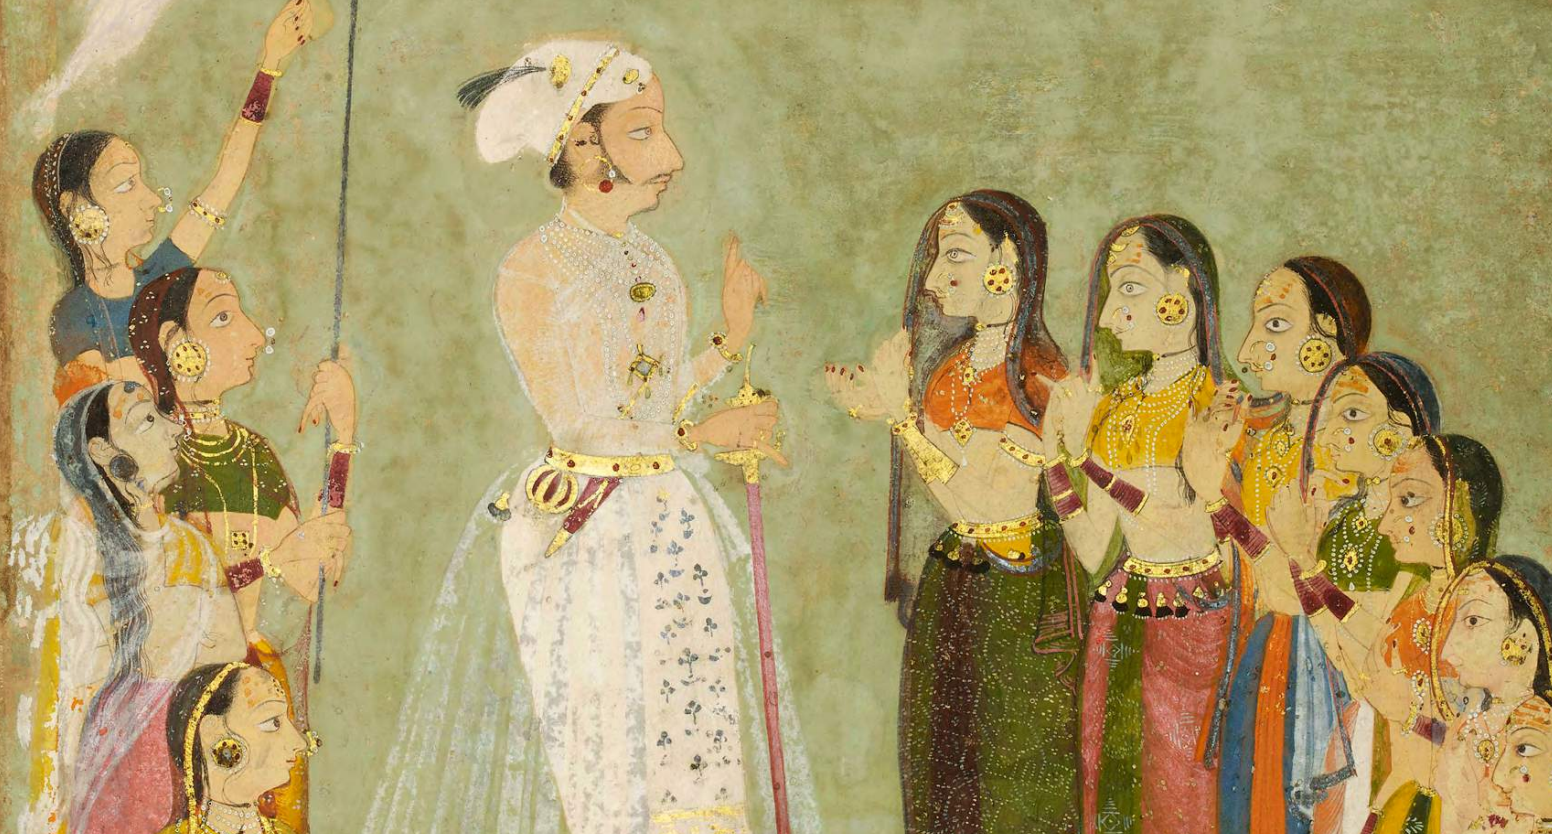 Prince Amar Singh of Mewar with ladies Udaipur, c. 1695, (detail)